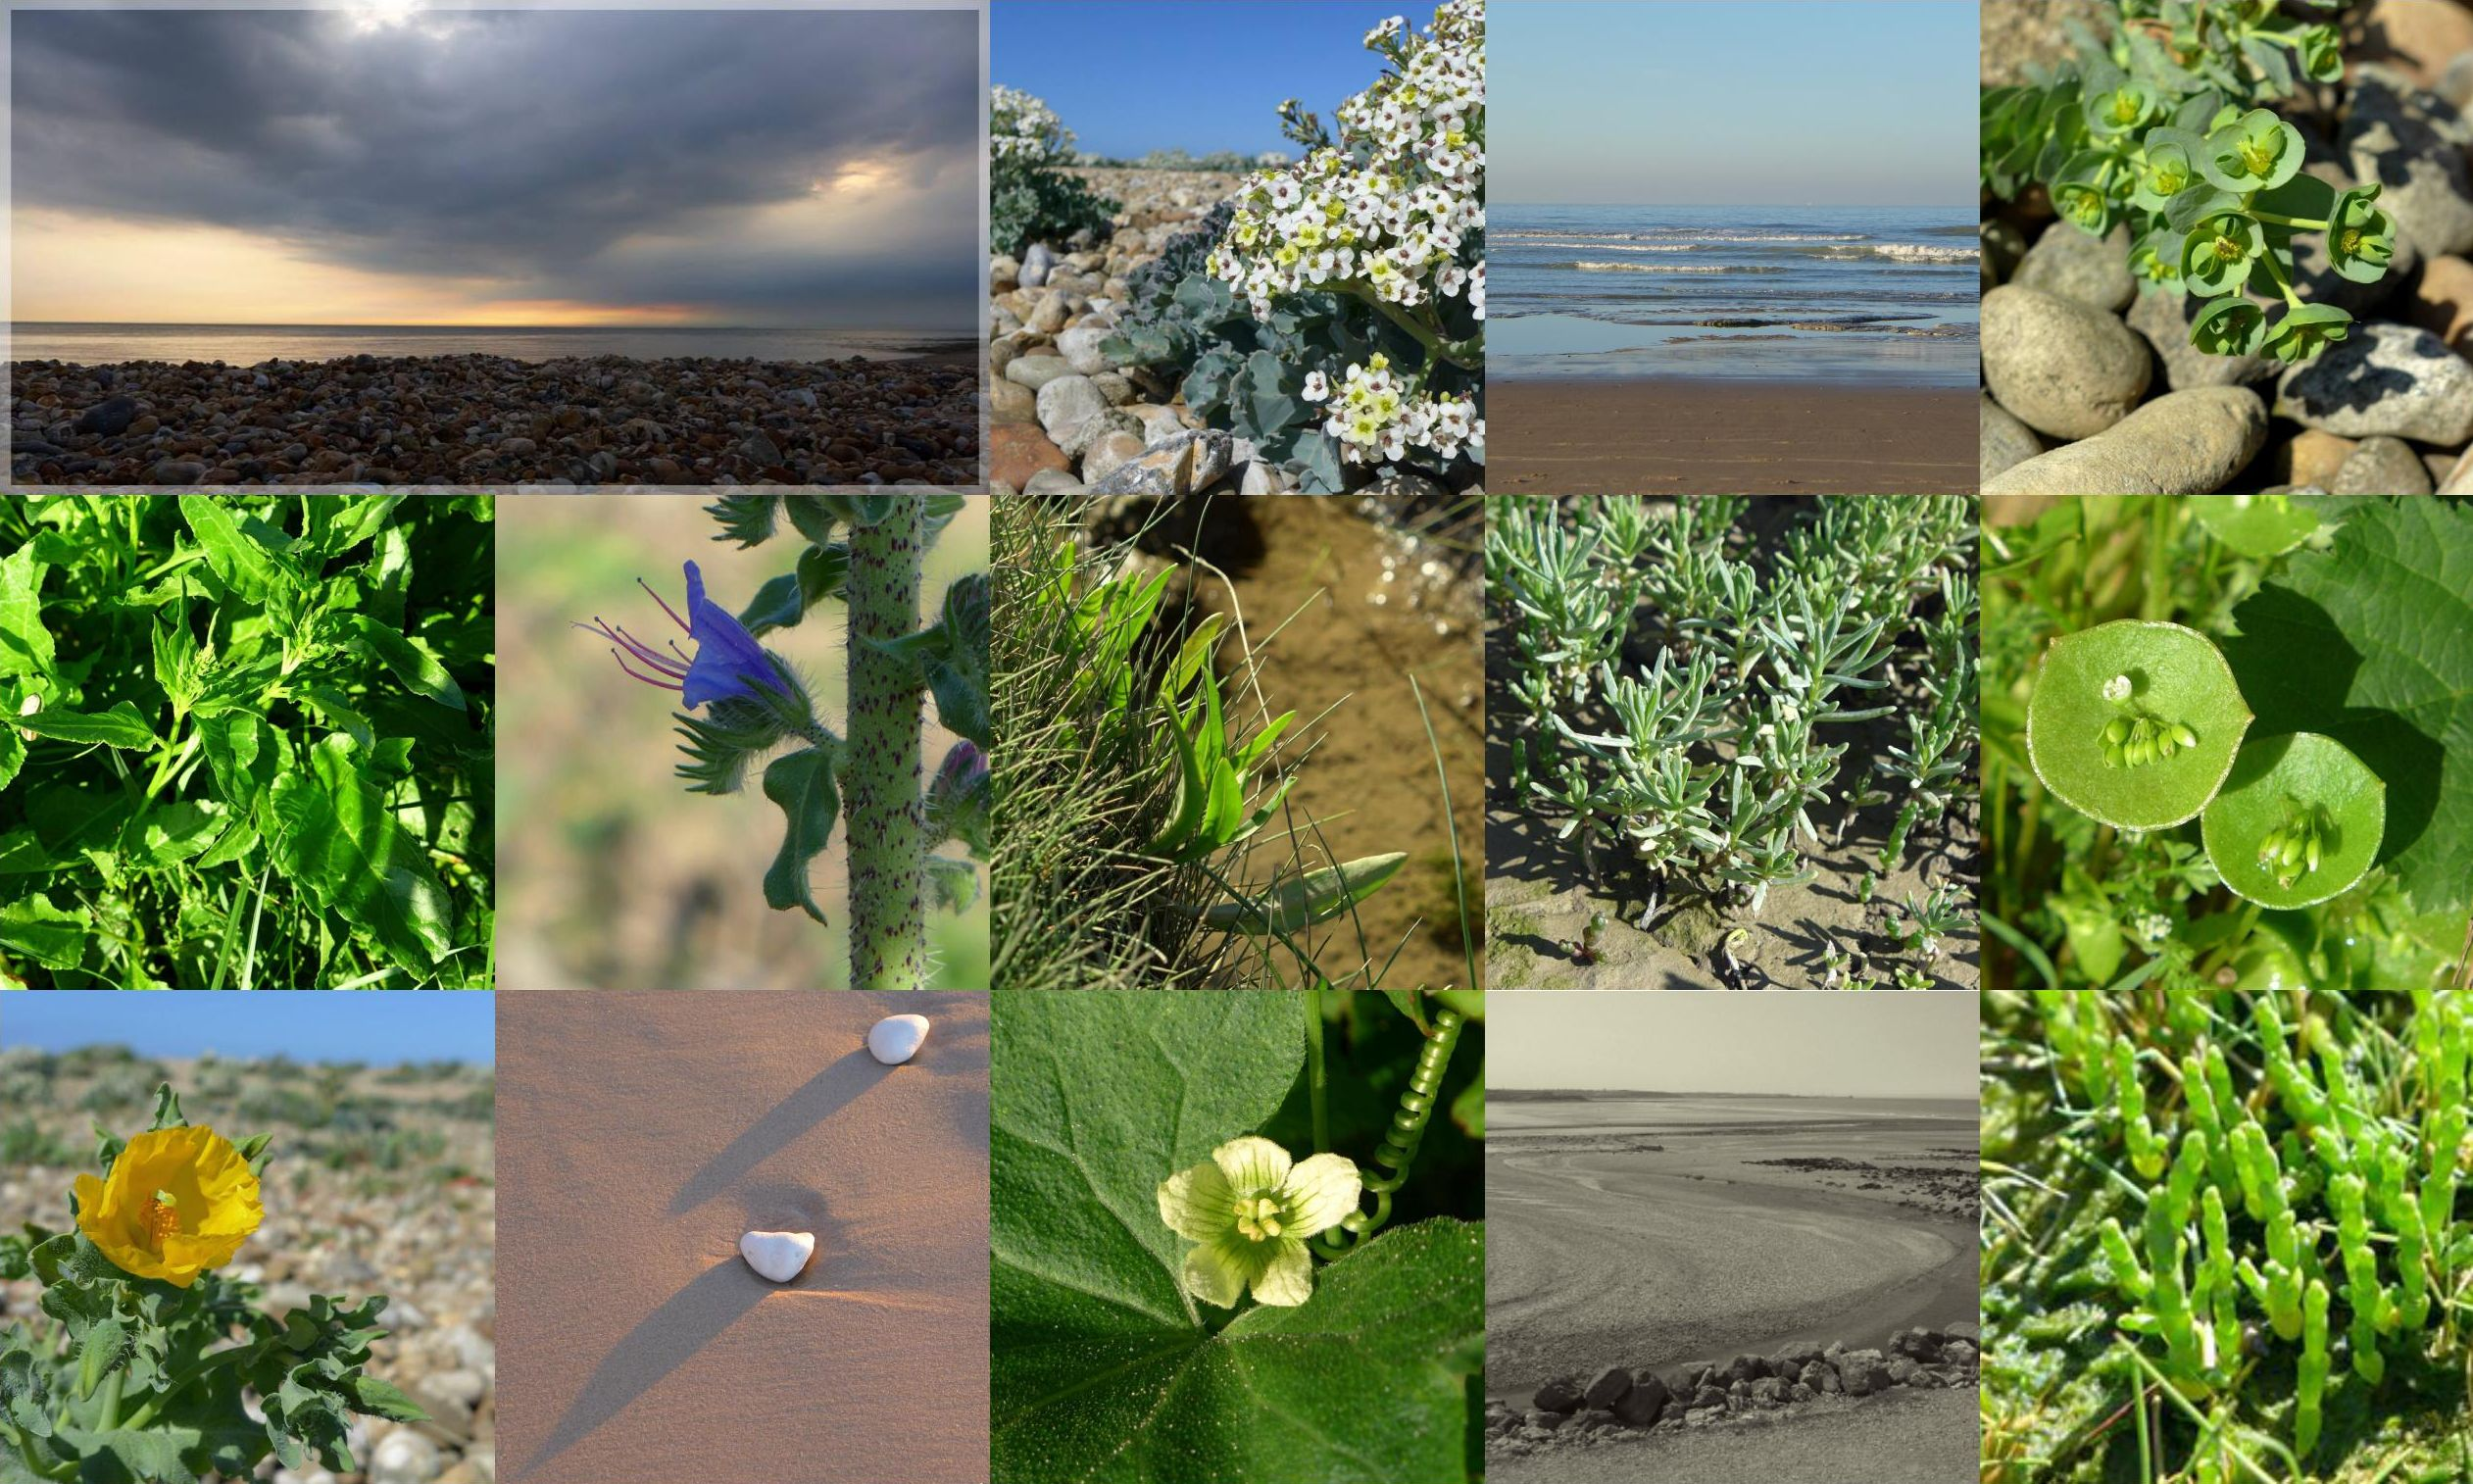 flore et paysage de l'estuaire de la slack, flora and lanscapes of the Slack estuary,photo éric